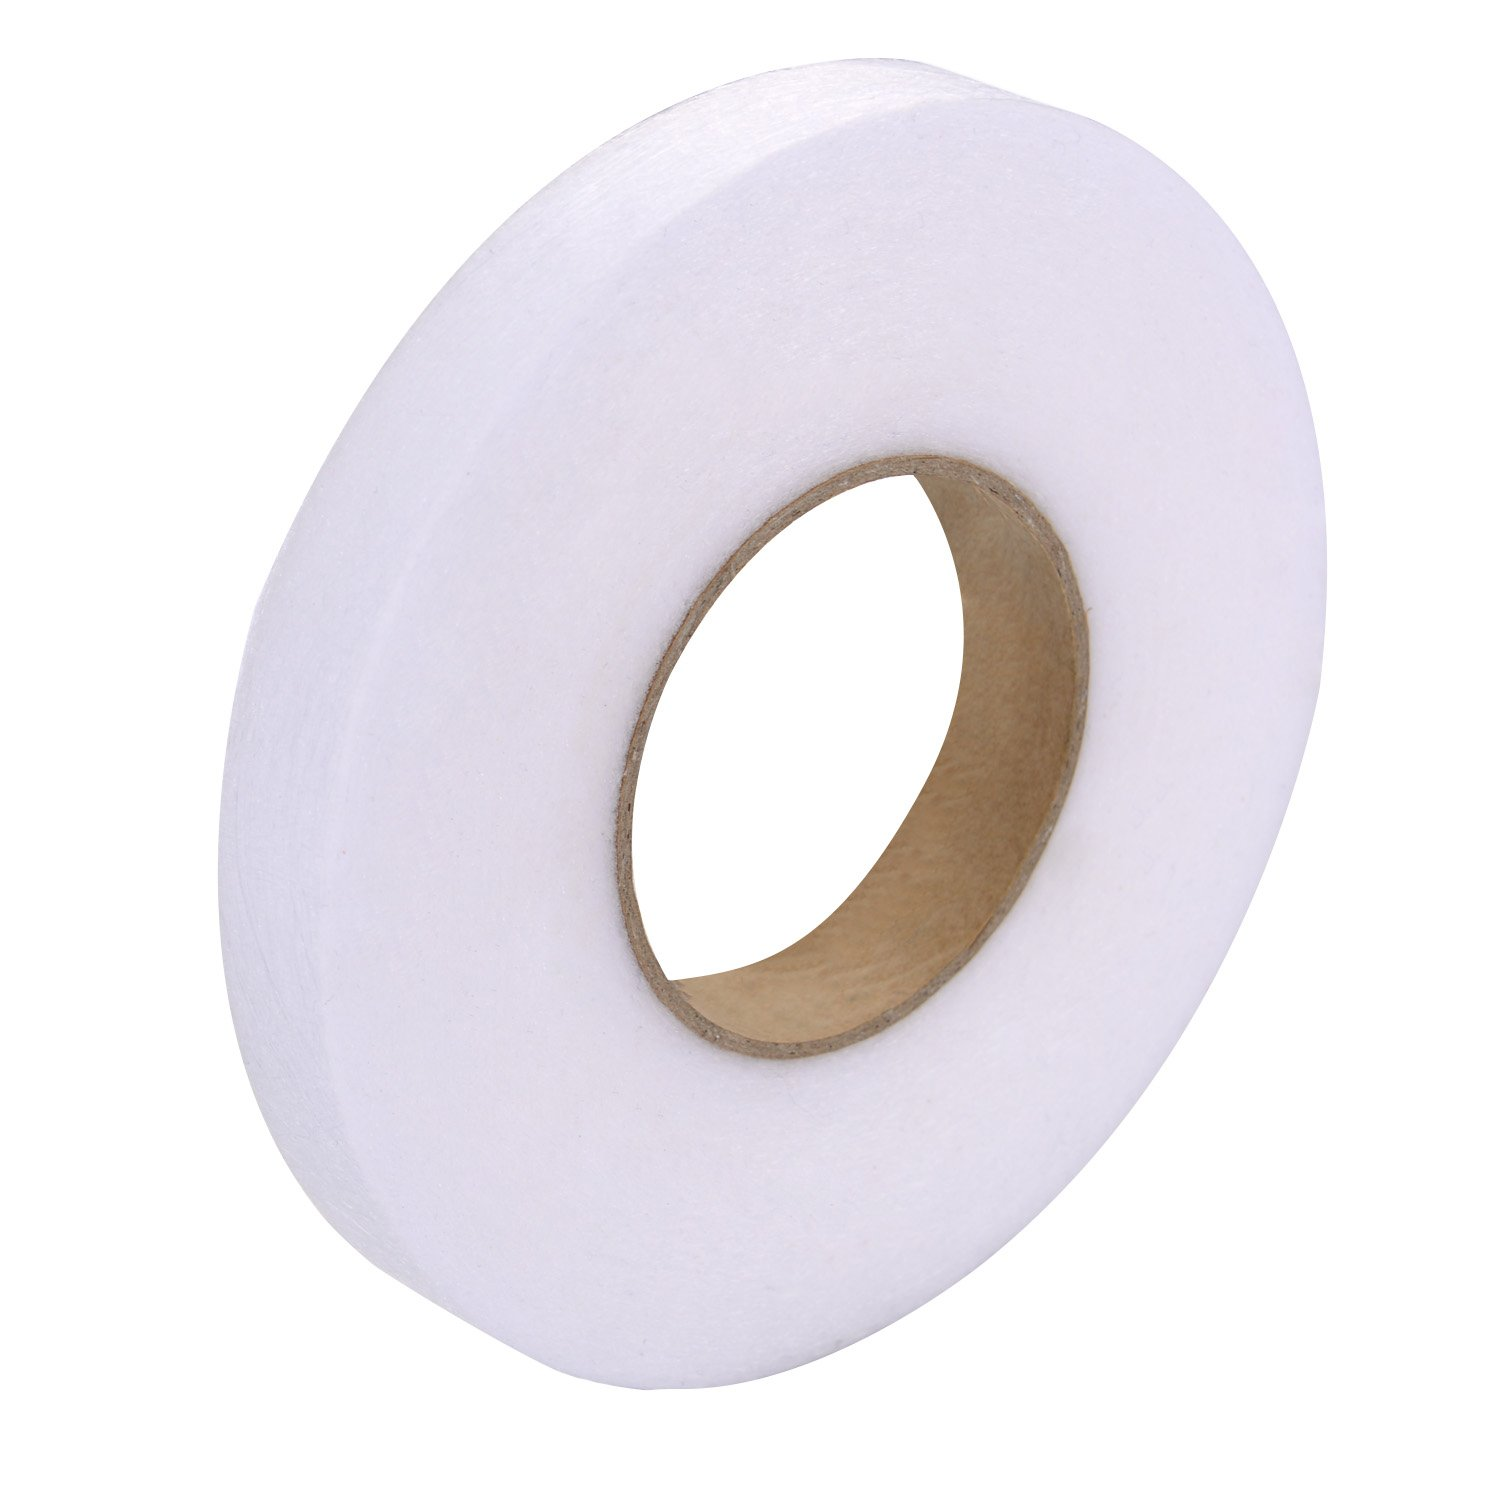 Outus 70 Yards Iron On Hem Tape Fabric Fusing Hemming Tape No Sew Hem Tape Roll for Jeans Trousers Garment Clothes (20 mm Wide) 4337014236